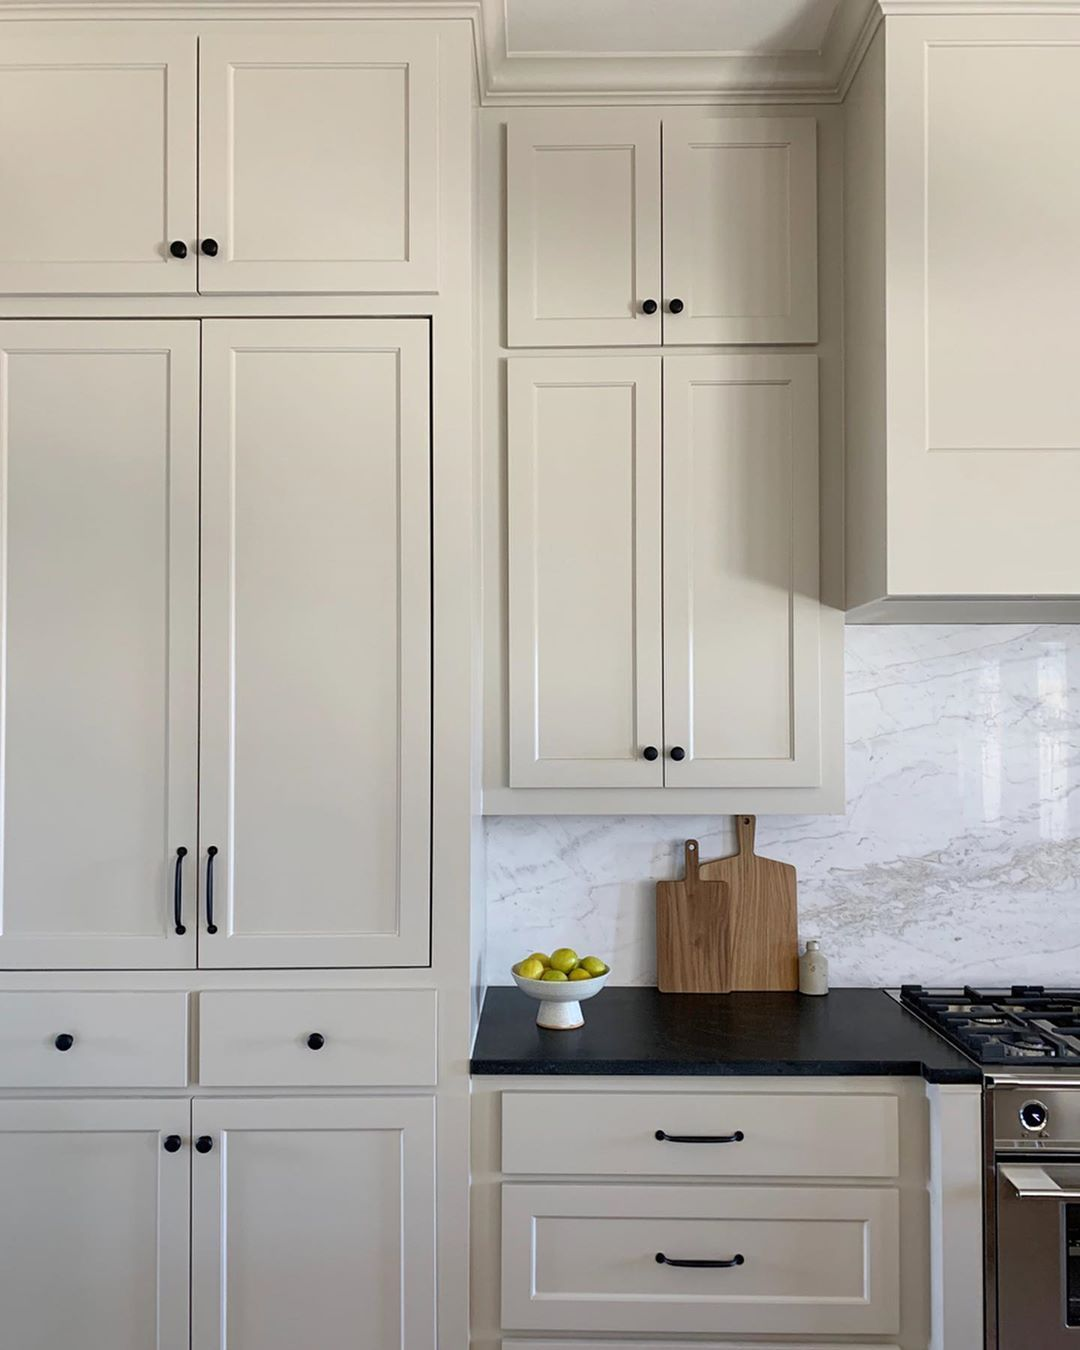 Brett Kara On Instagram We Re Here To Make The Case For Taupe Cabinets And Black Countertops Wan In 2020 Taupe Kitchen Cabinets Taupe Kitchen House Design Kitchen